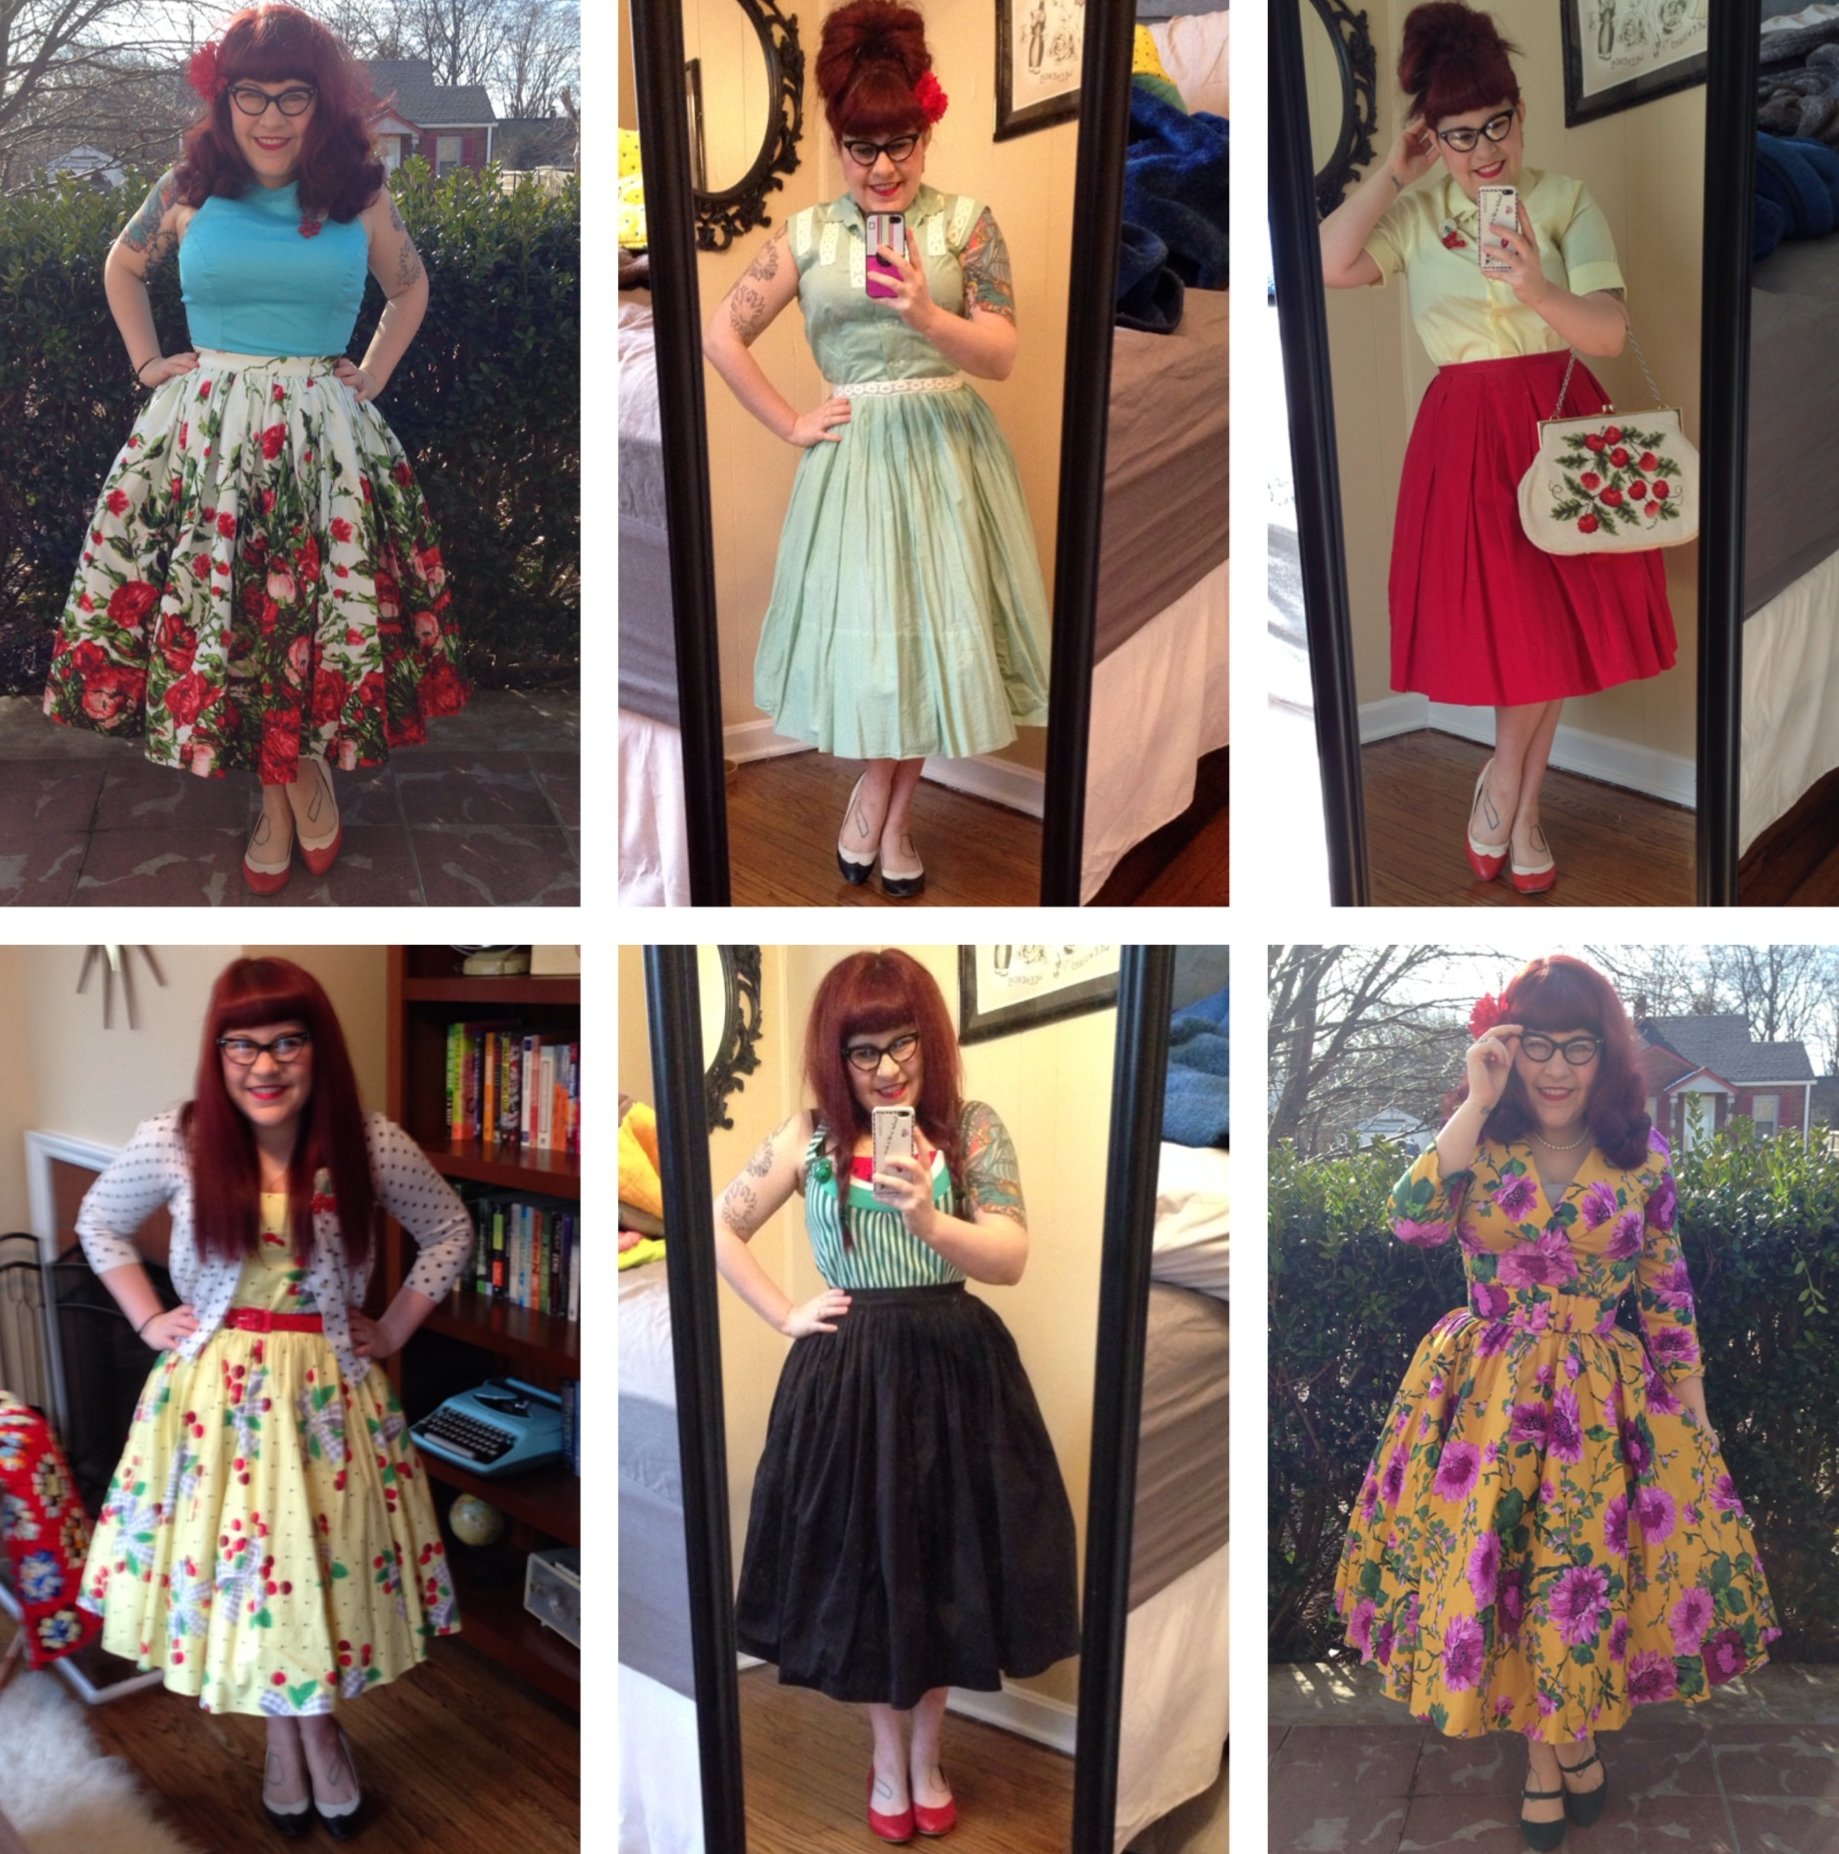 b81a73333b9 June s February Outfit Round-Up  Pinup Girl Clothing